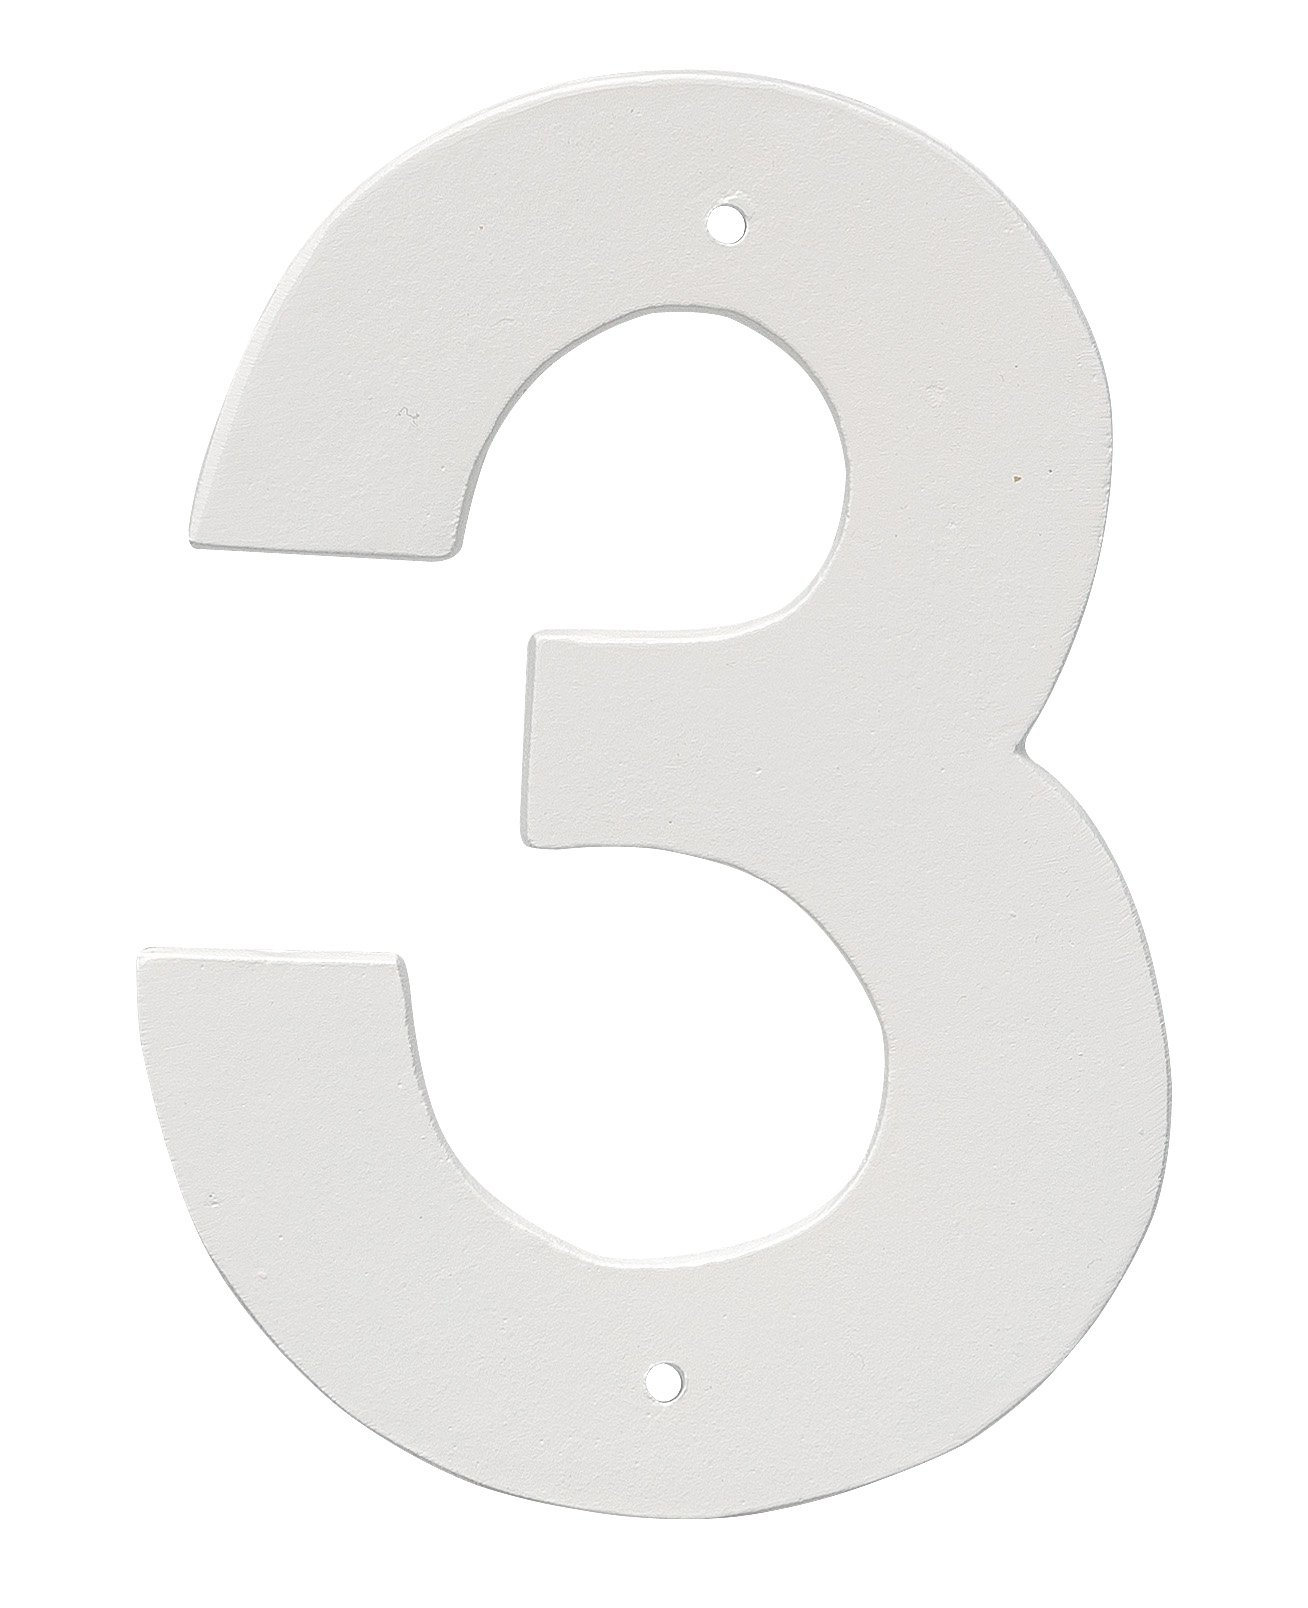 Montague Metal Products 4'' Aluminum House Number 3 Outdoor Plaque, Medium, White